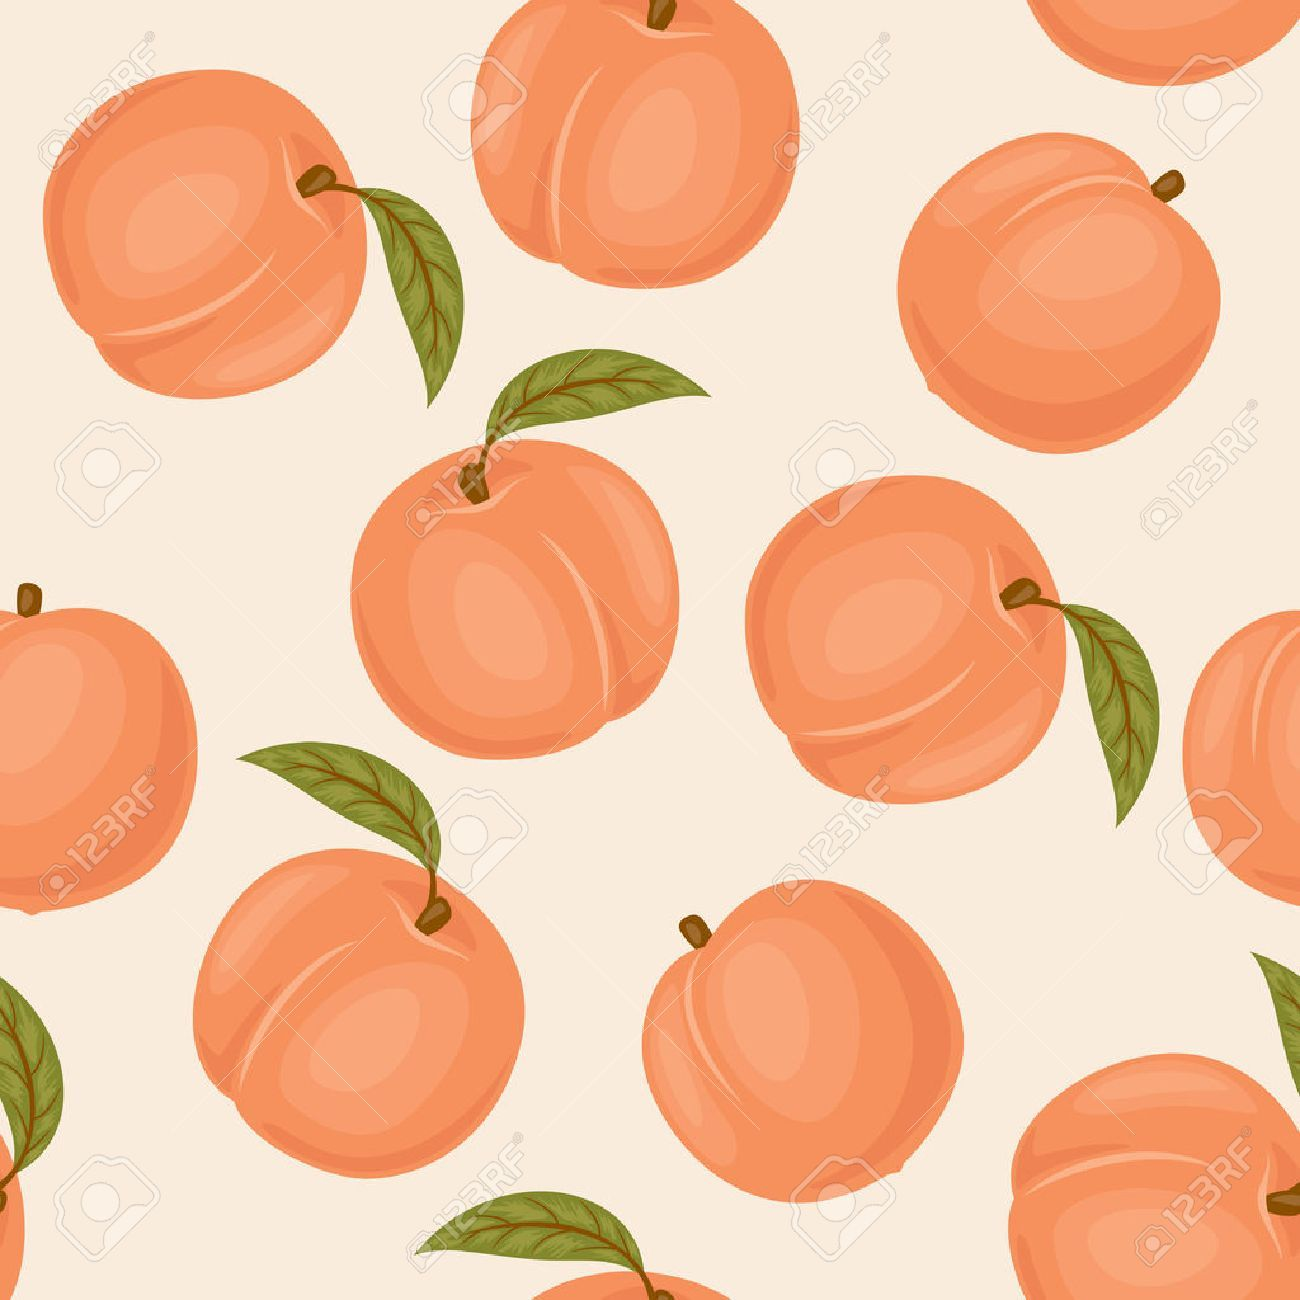 Stock Vector With Images Peach Wallpaper Peach Art Peach Background